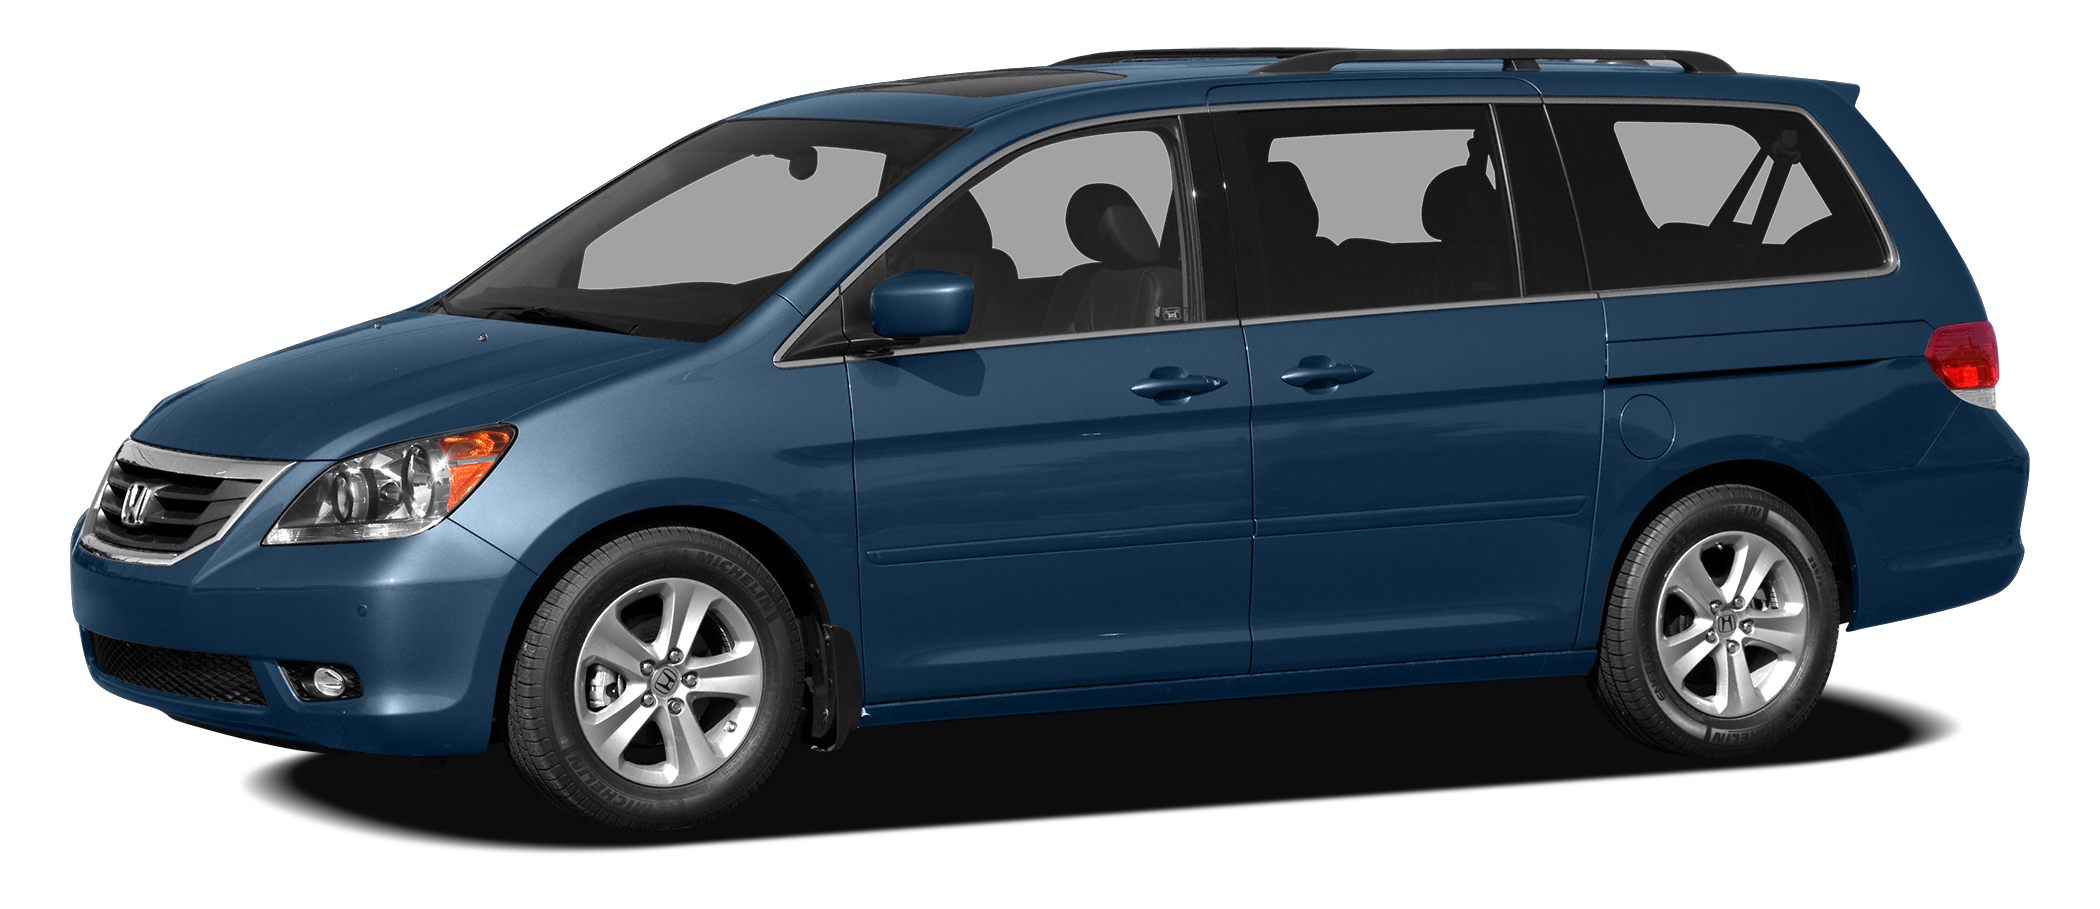 2010 Honda Odyssey EX-L Youll NEVER pay too much at Regal Honda Ready to roll Imagine yourself